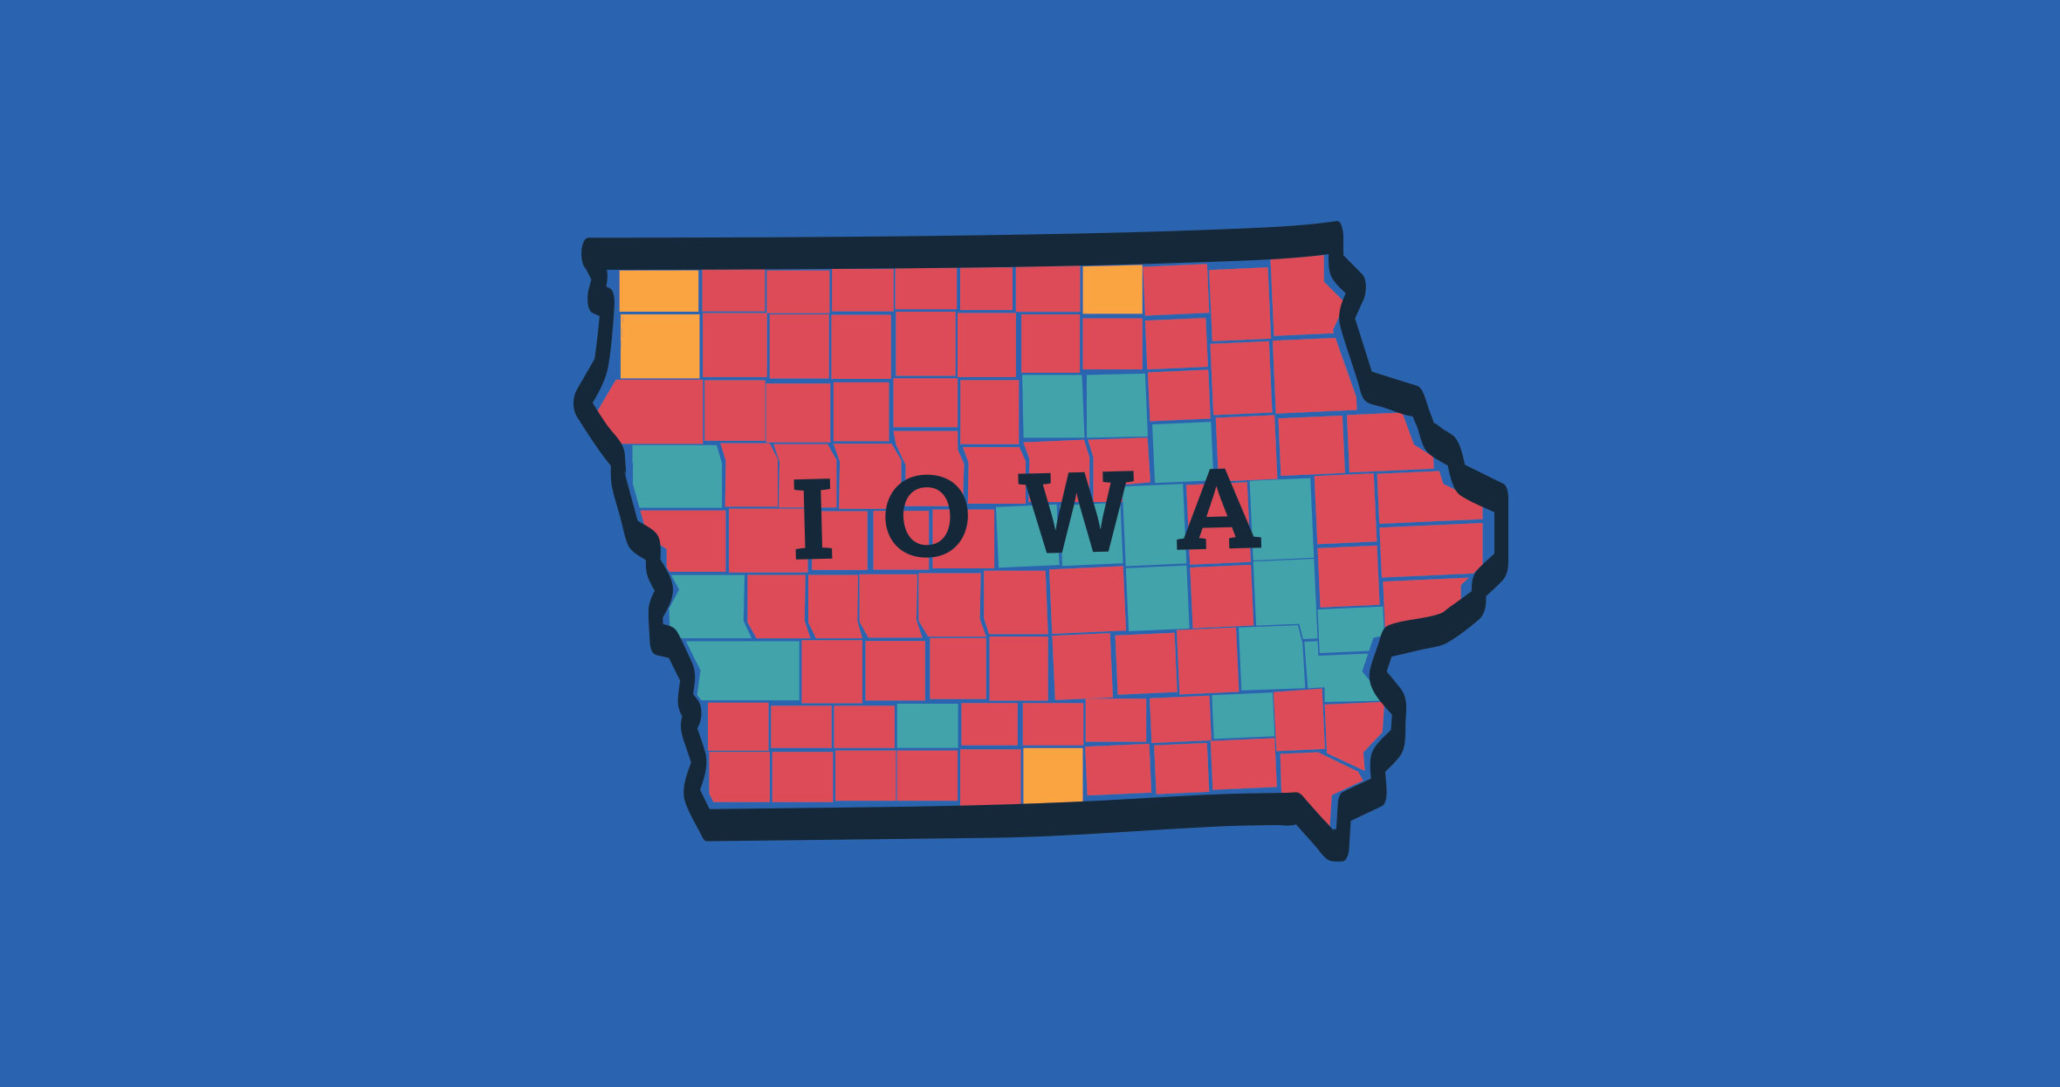 Map of the state of Iowa